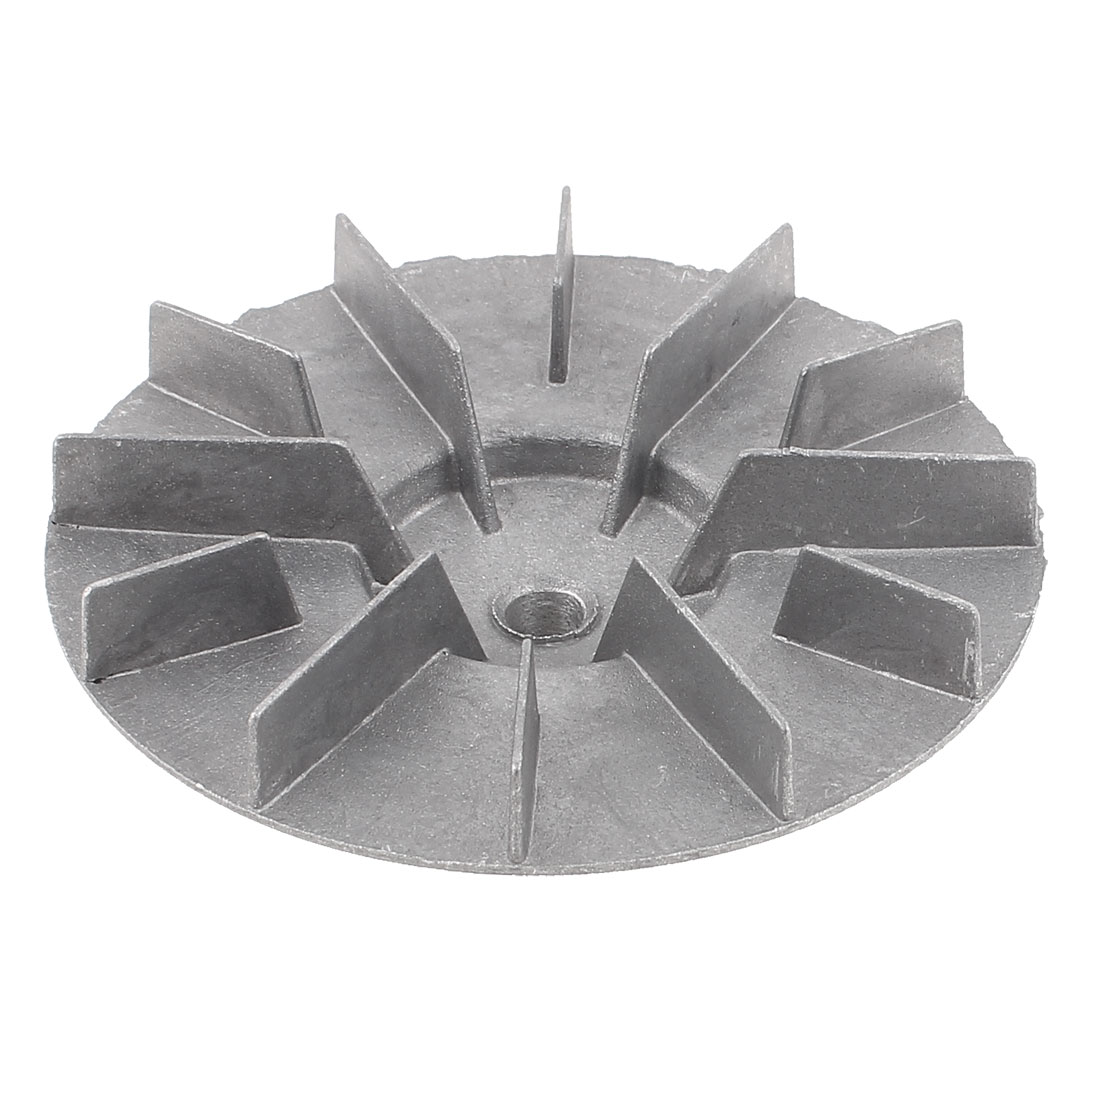 10mm Bore Diameter Silver Tone Plastic Blower Fan Vane Wheel